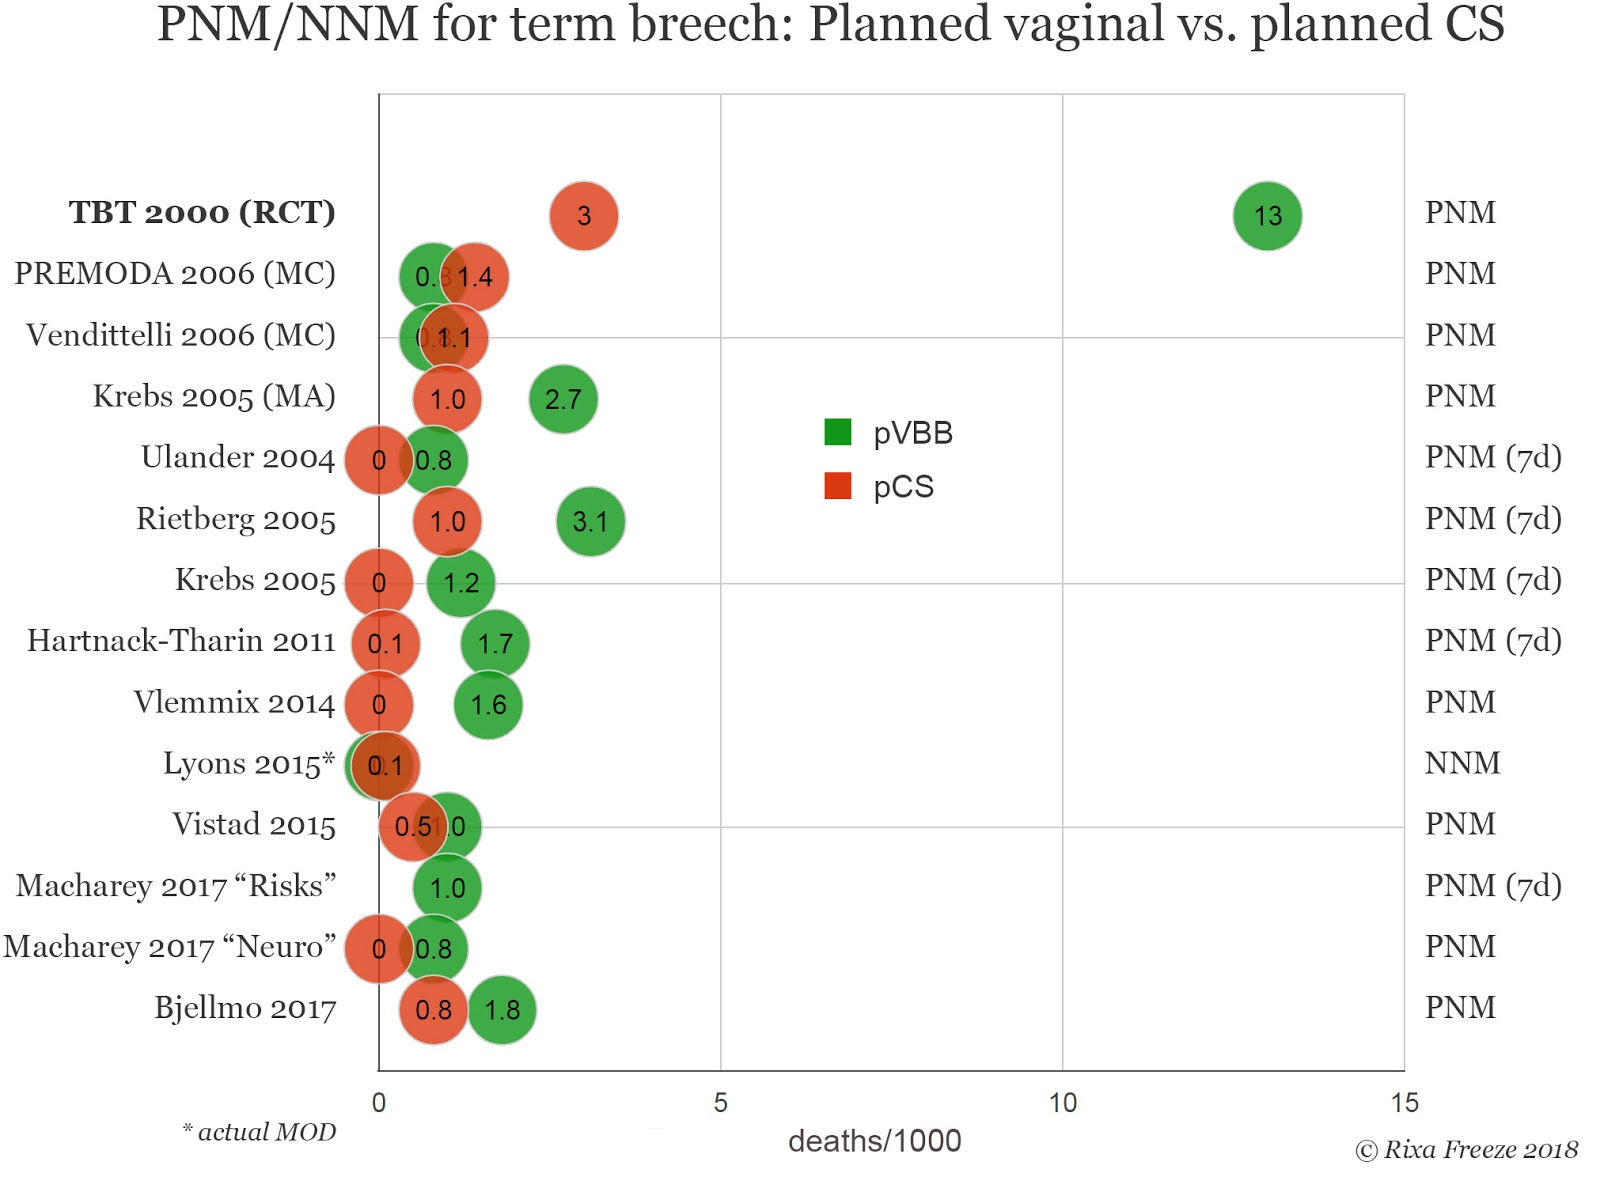 Perinatal mortality in term breech birth